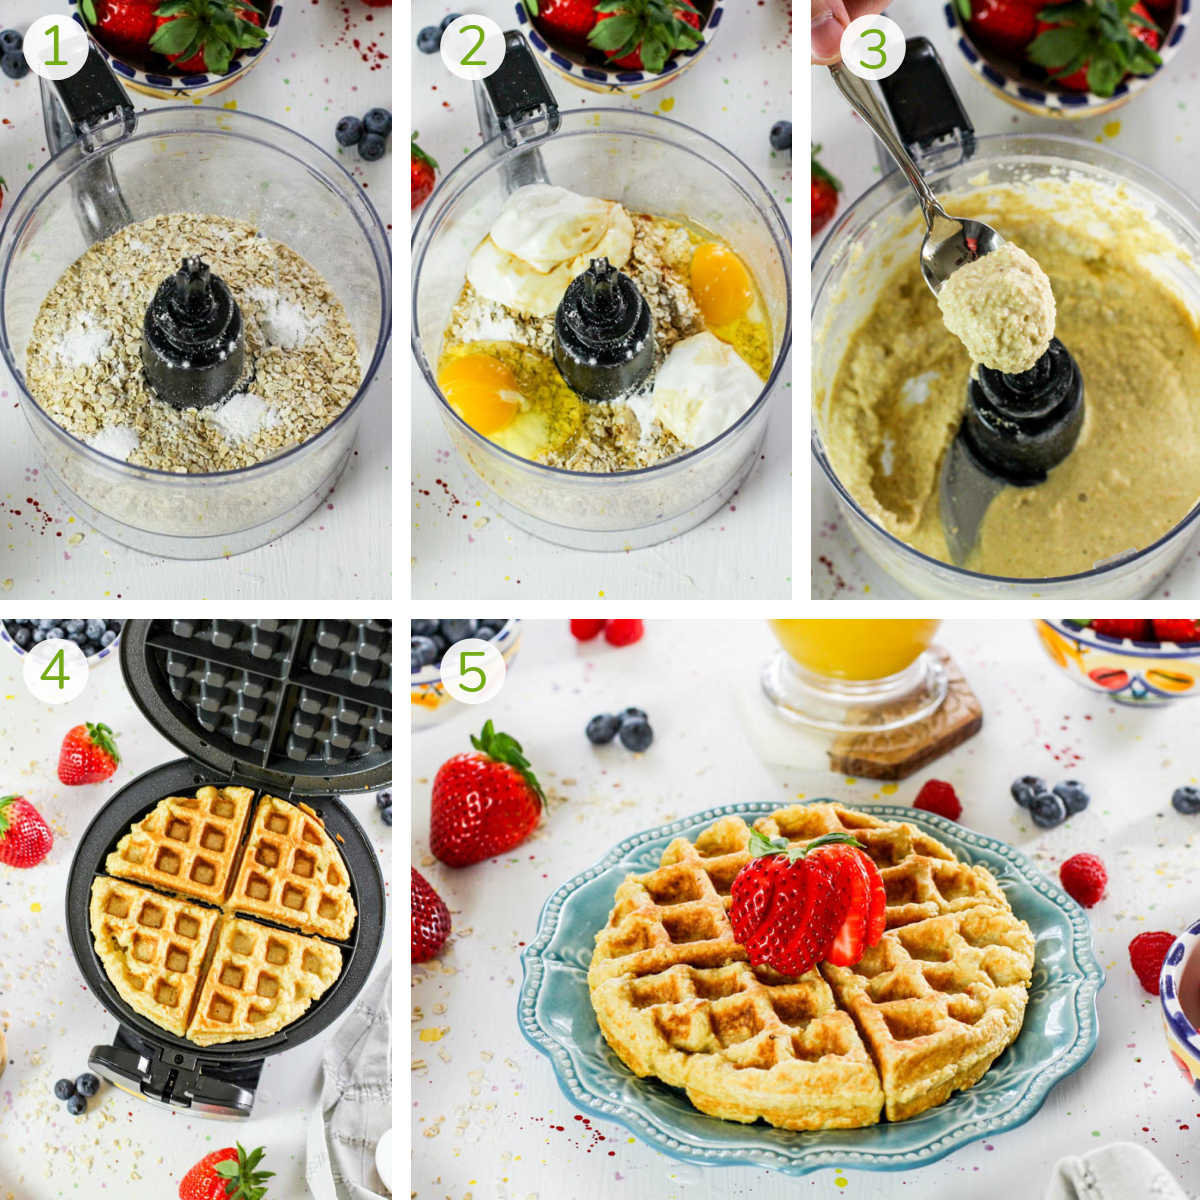 several process photos showing mixing the waffle batter and cooking it on the waffle iron.